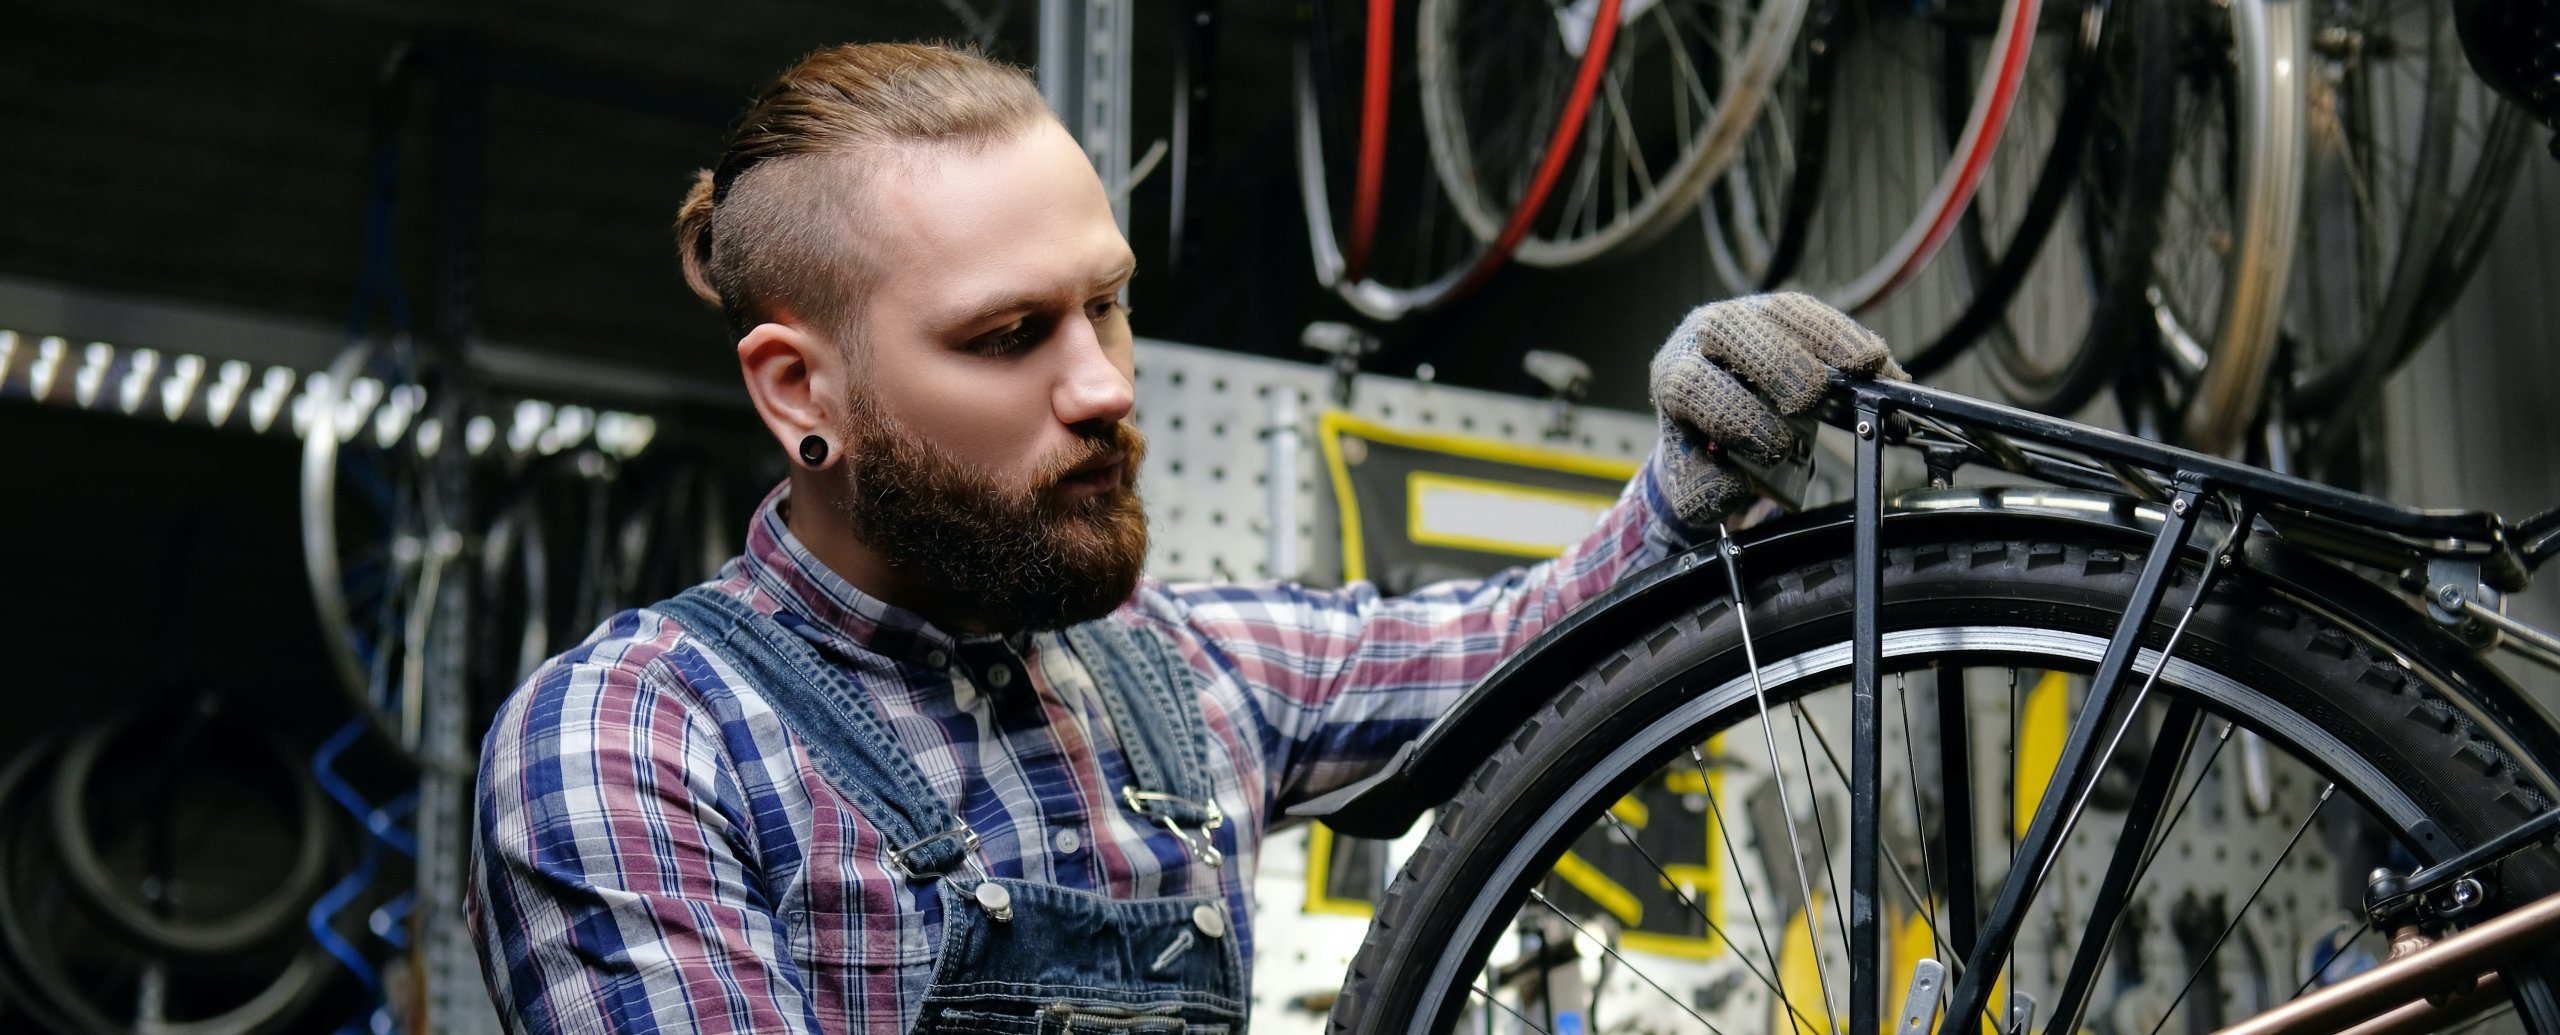 Man working on a bicycle in a bike shop